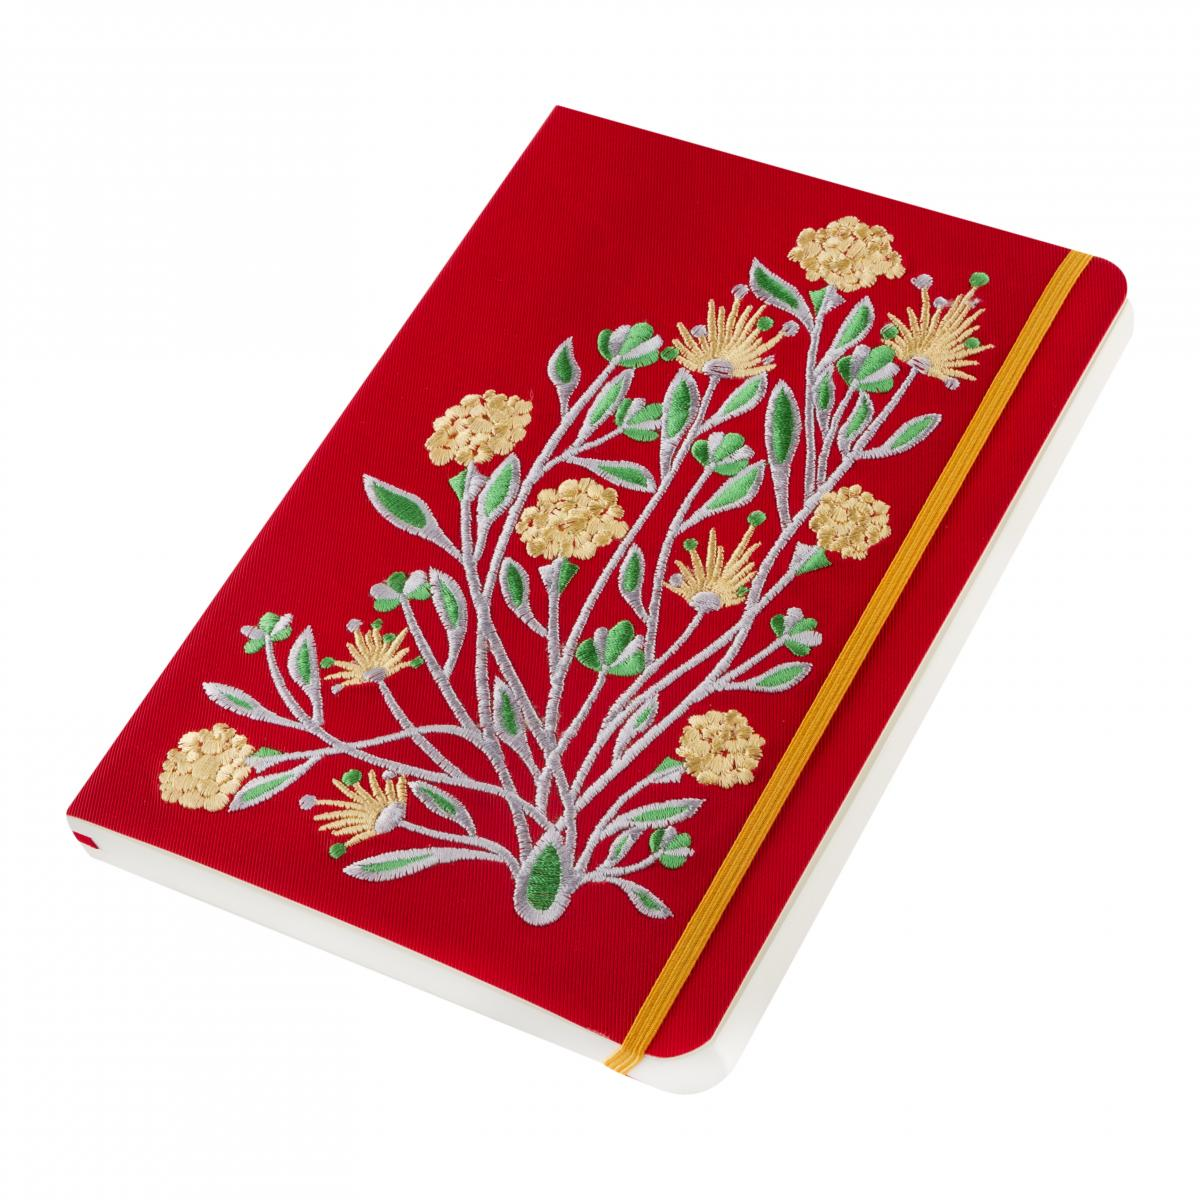 Eco-leather notebook with embroidery Elven flower, red. Photo №2. | Narodnyi dim Ukraine